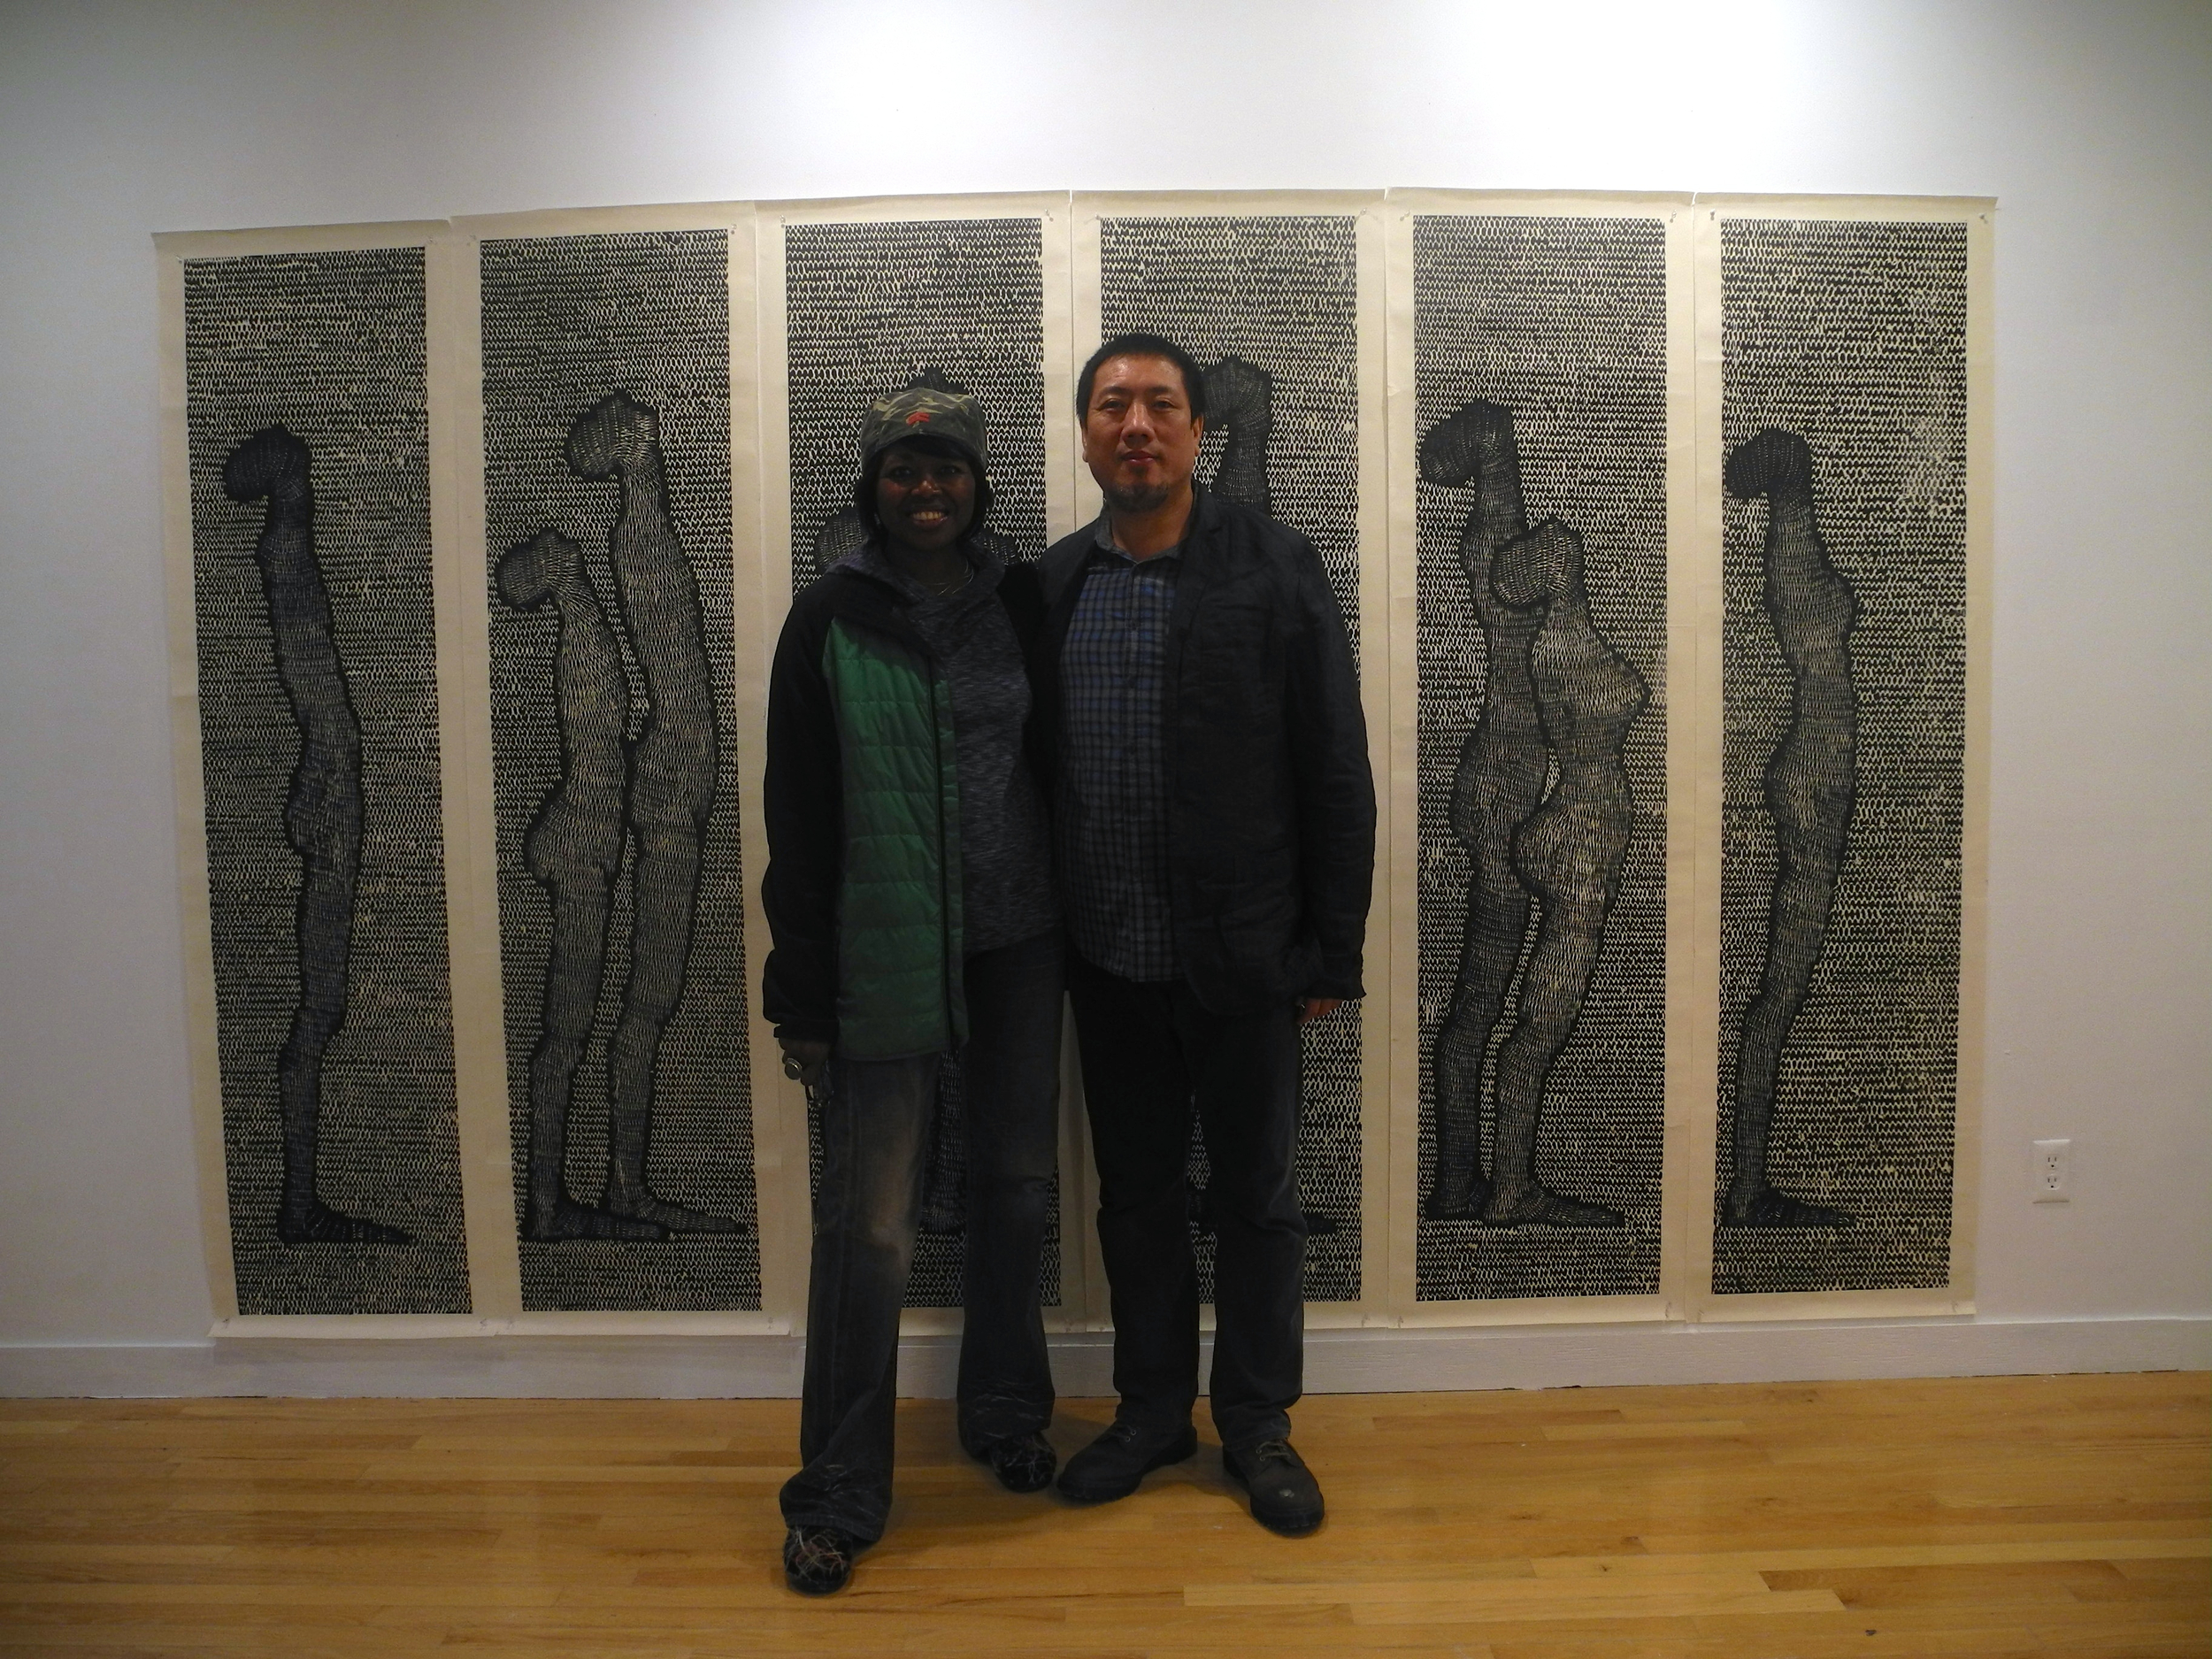 I was blown away by Luo Xiangke's wood block prints. And so happy to be able to purchase one.